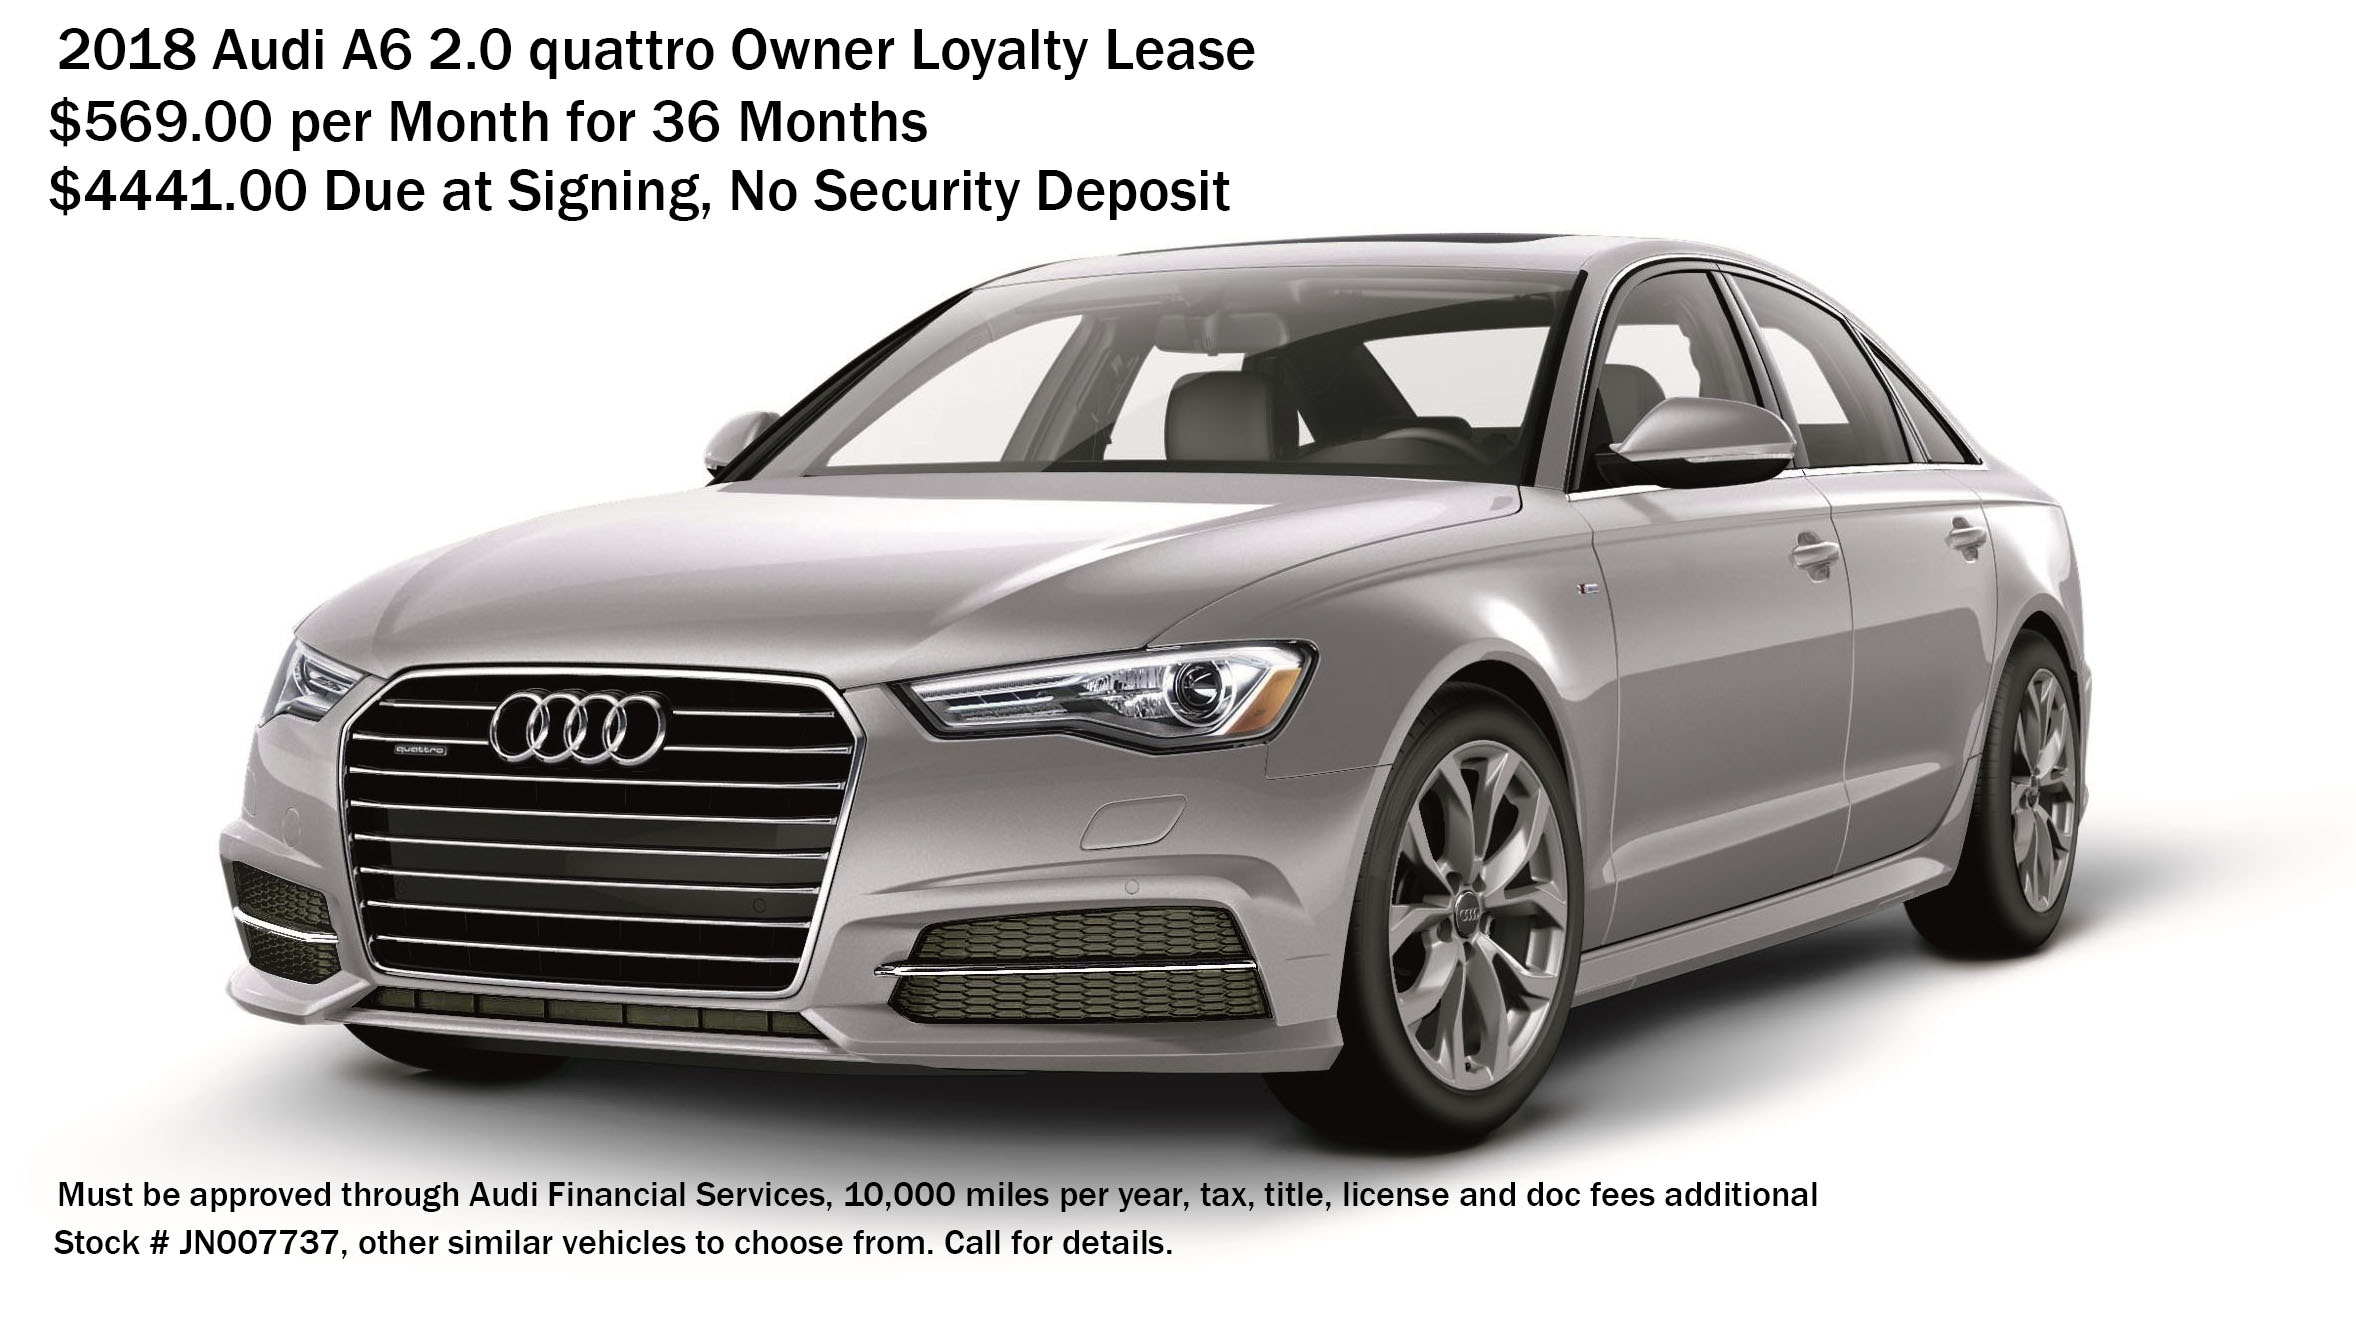 lease car ny deals best monthly audi specials cabriolet leasing